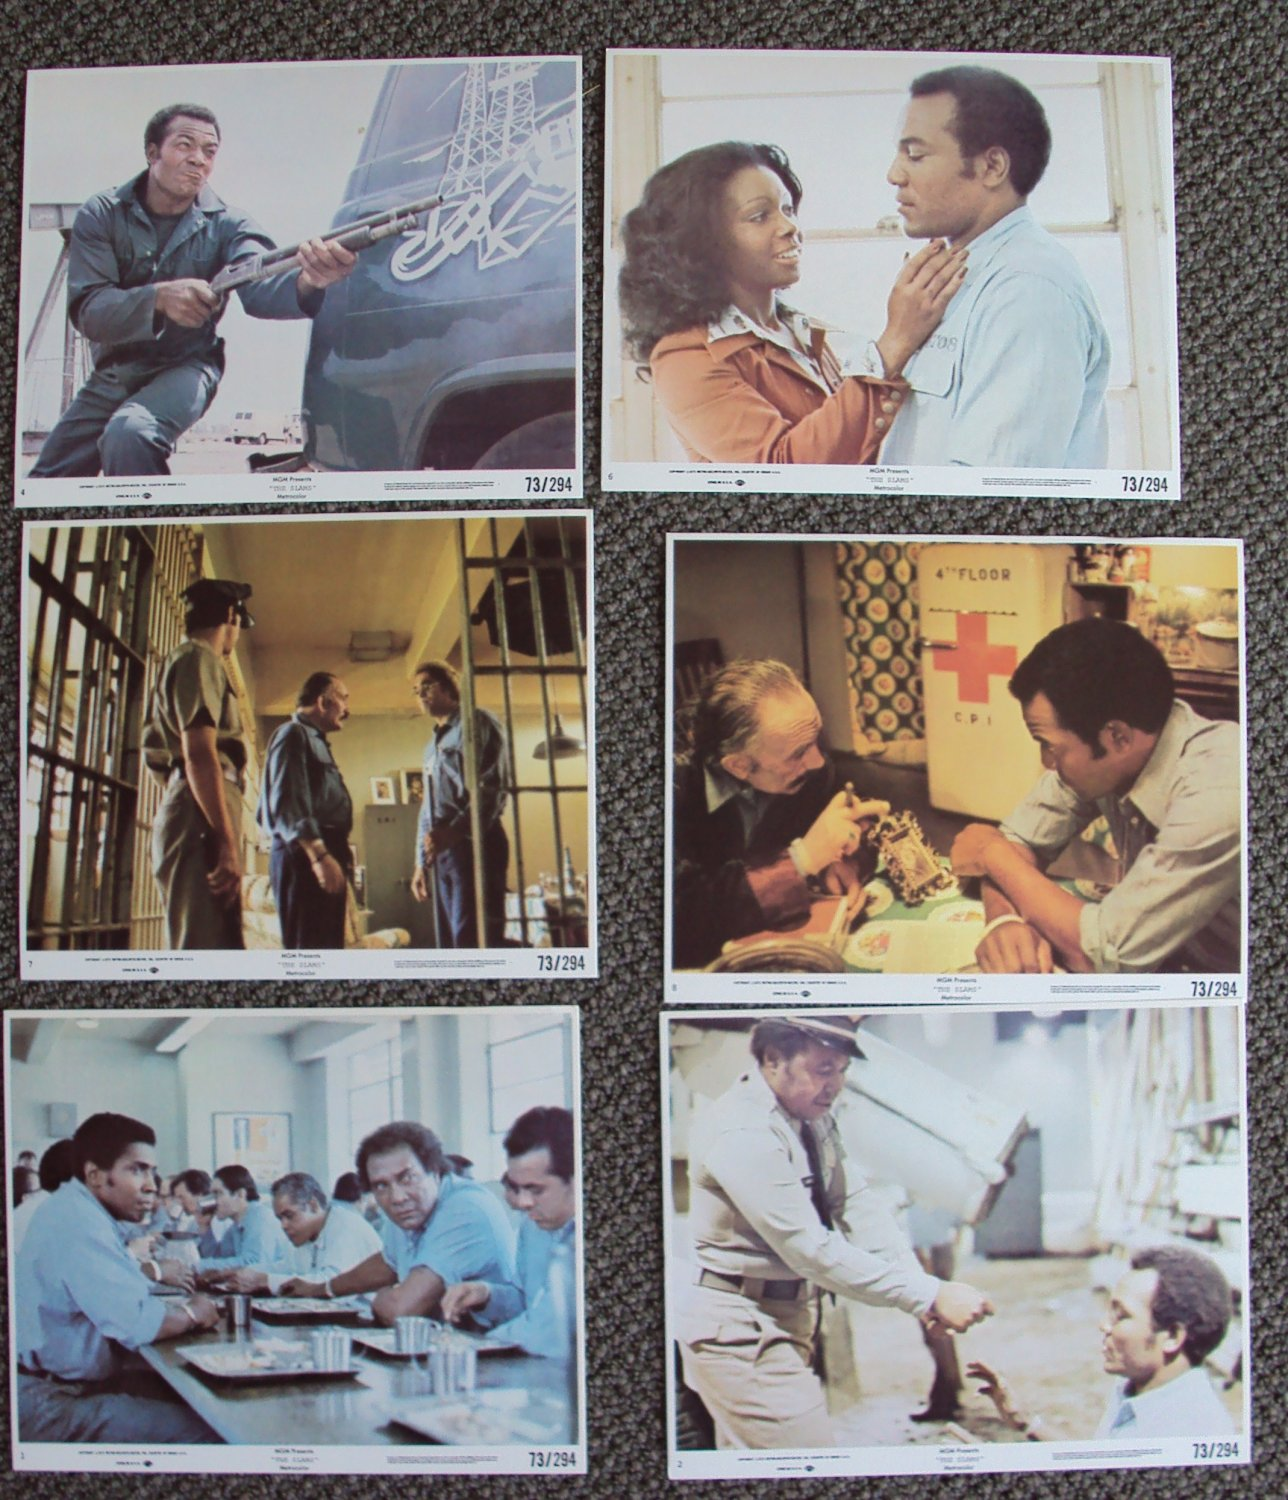 JIM BROWN The SLAMS Blaxploitation Prison LOBBY CARD 's